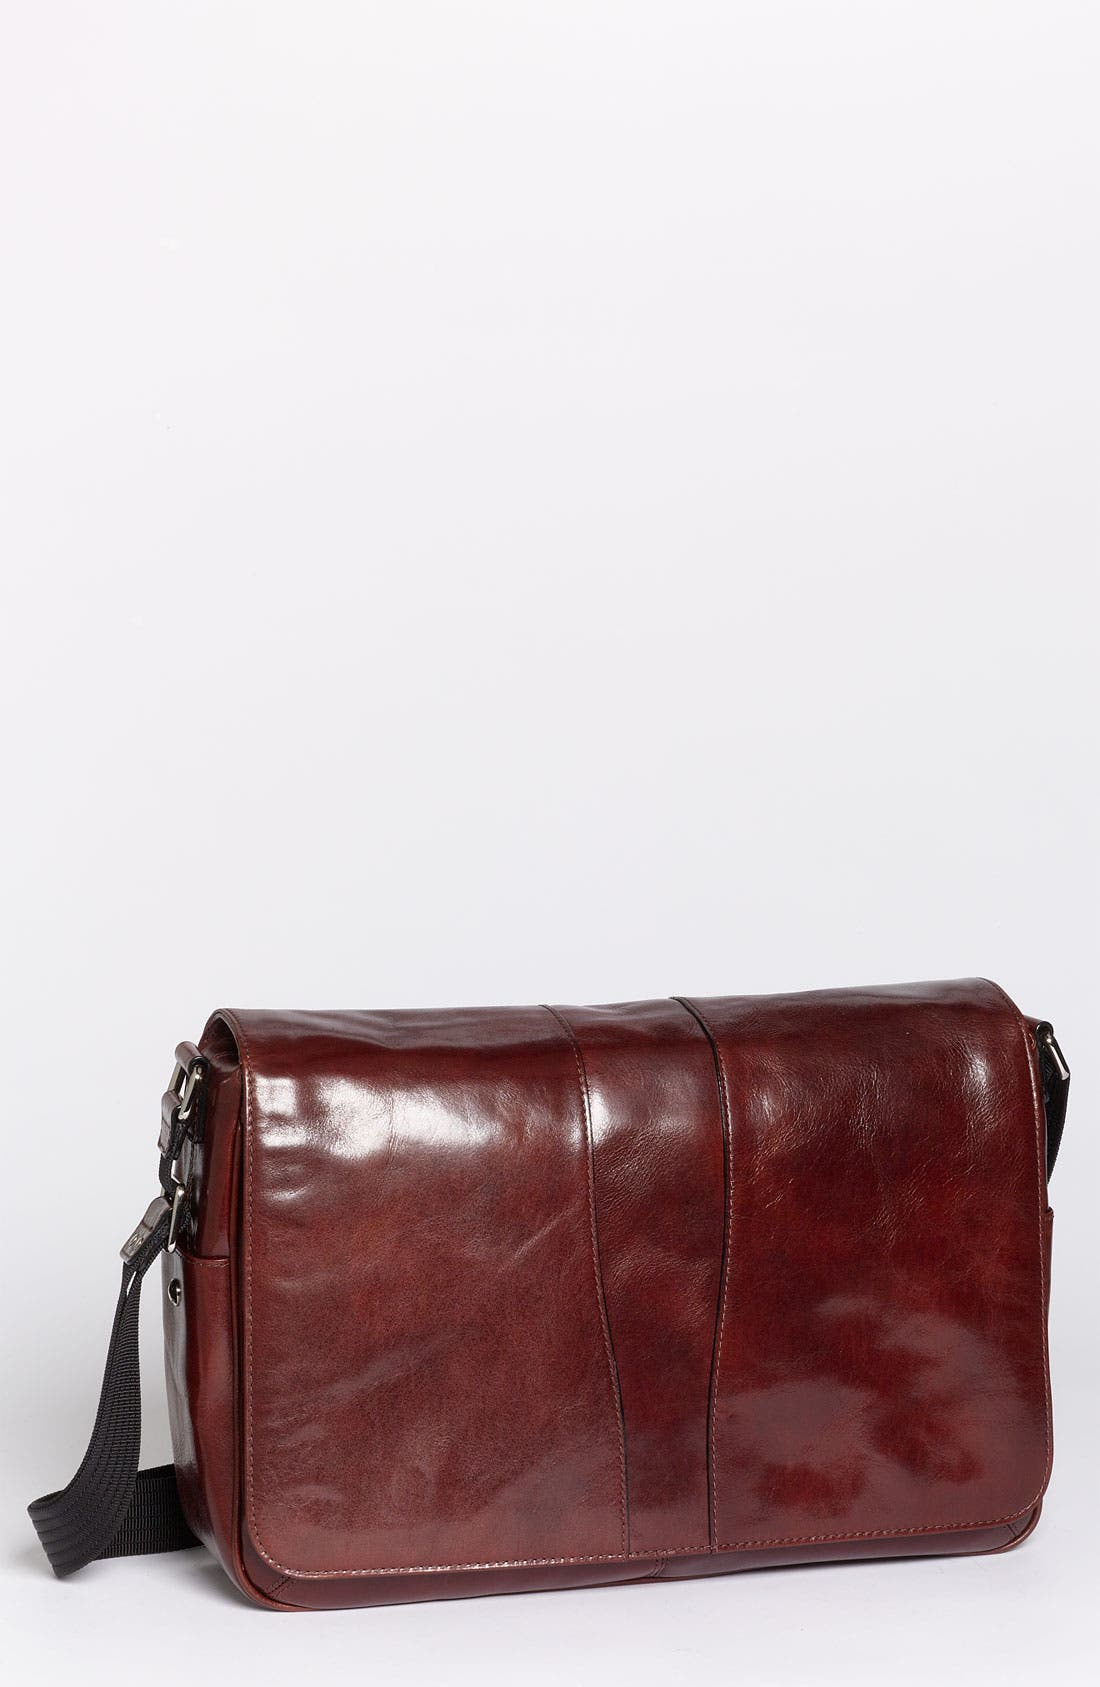 Main Image - Bosca Leather Messenger Bag